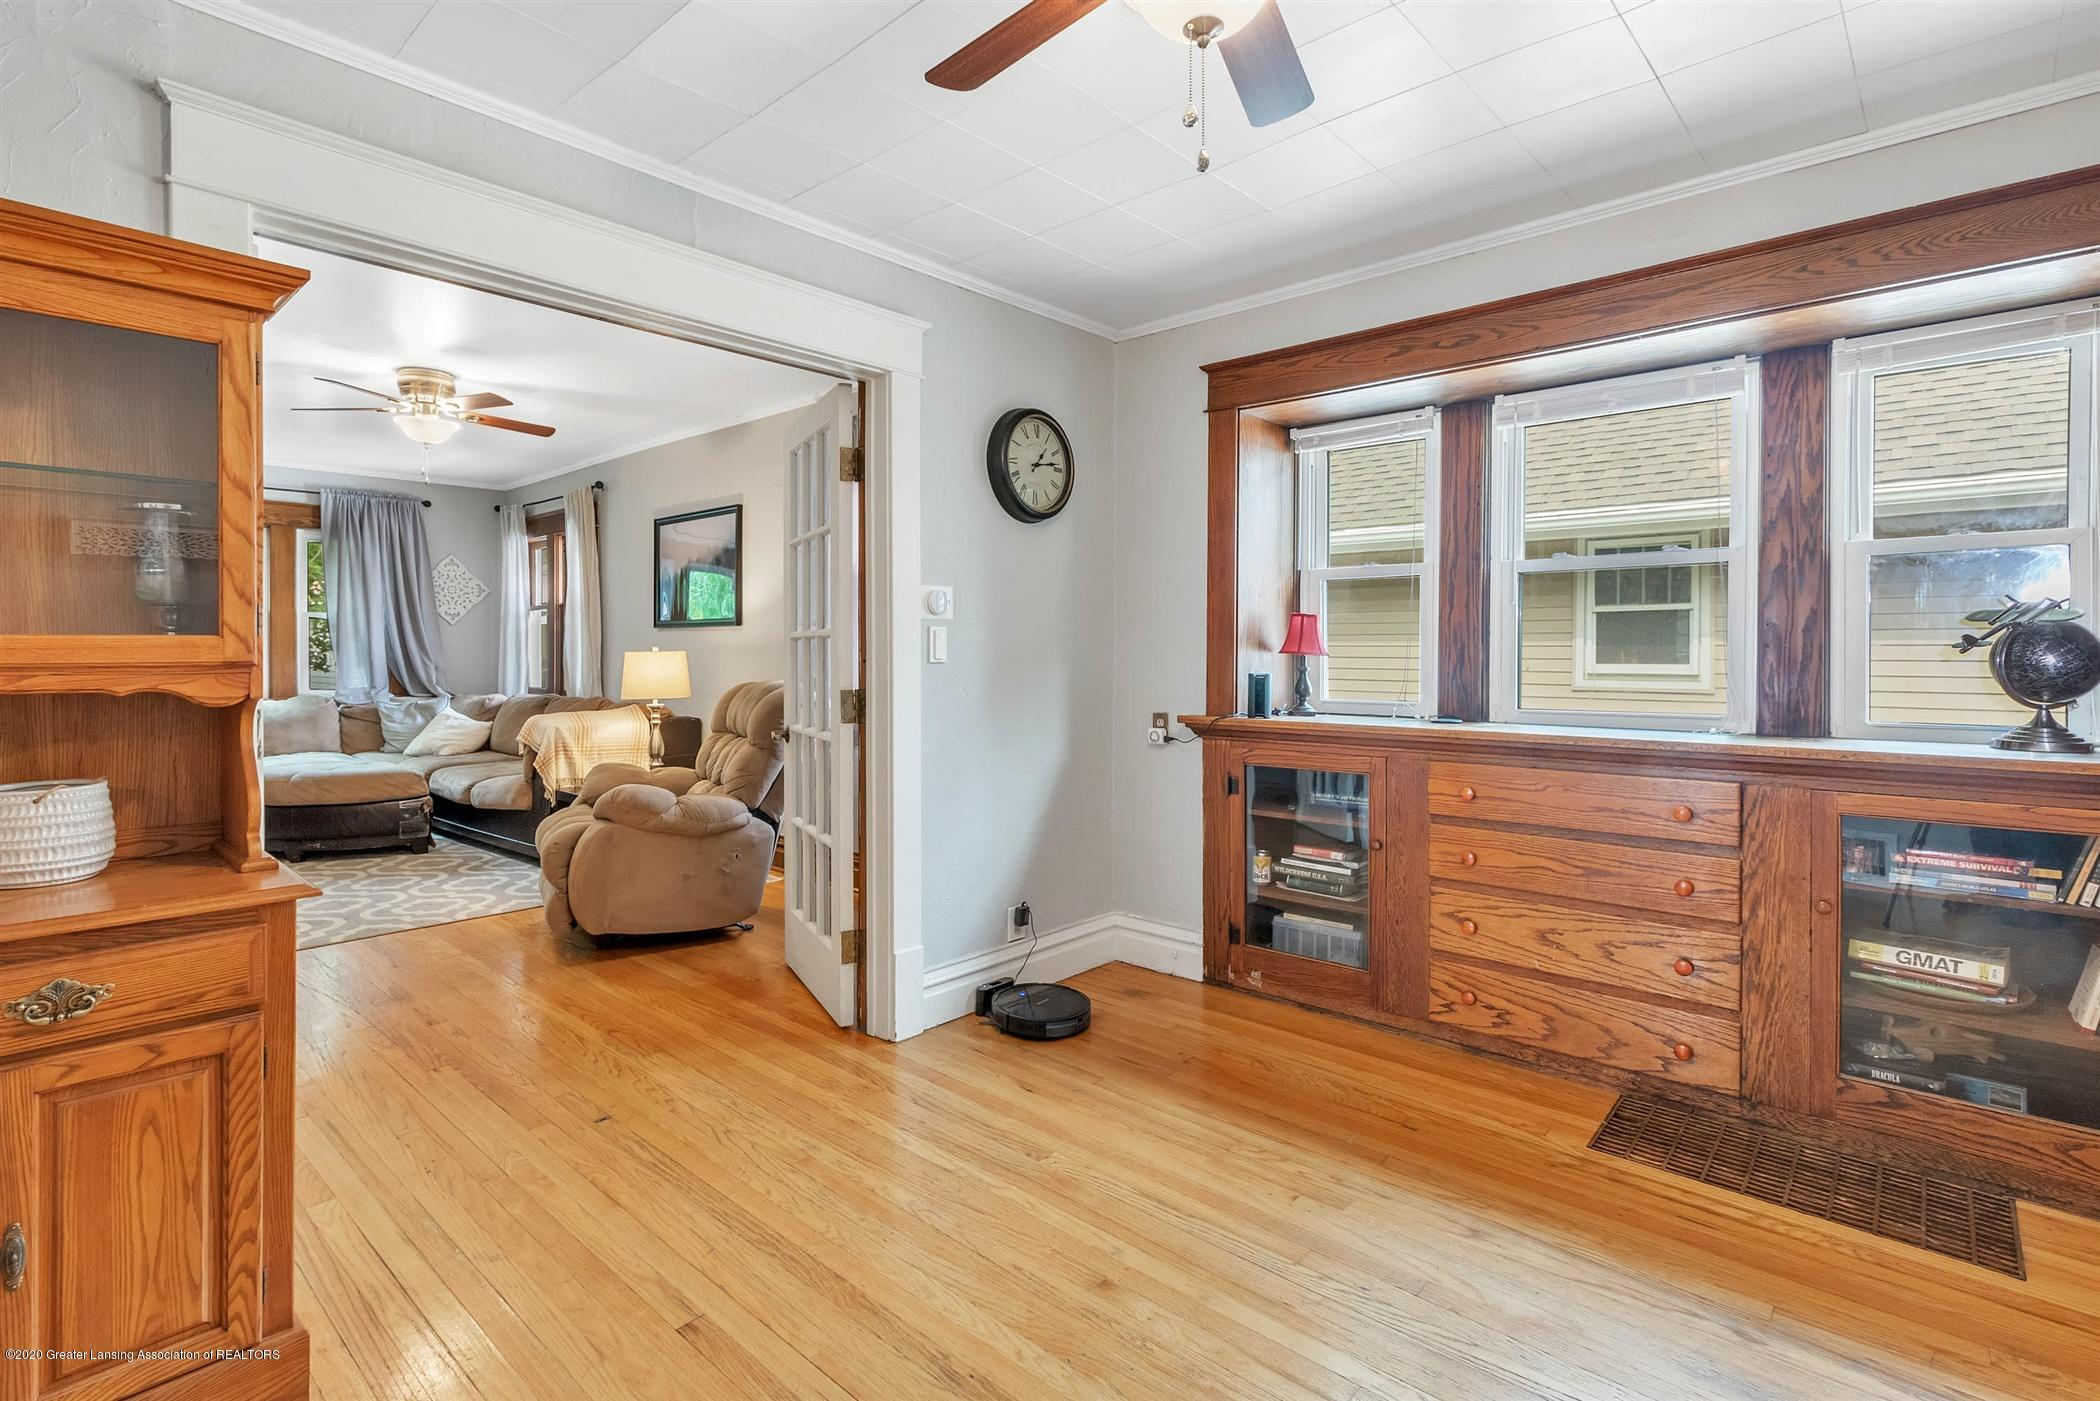 2127 Forest Ave - 10-2127 Forest Ave-WindowStill-Real - 10